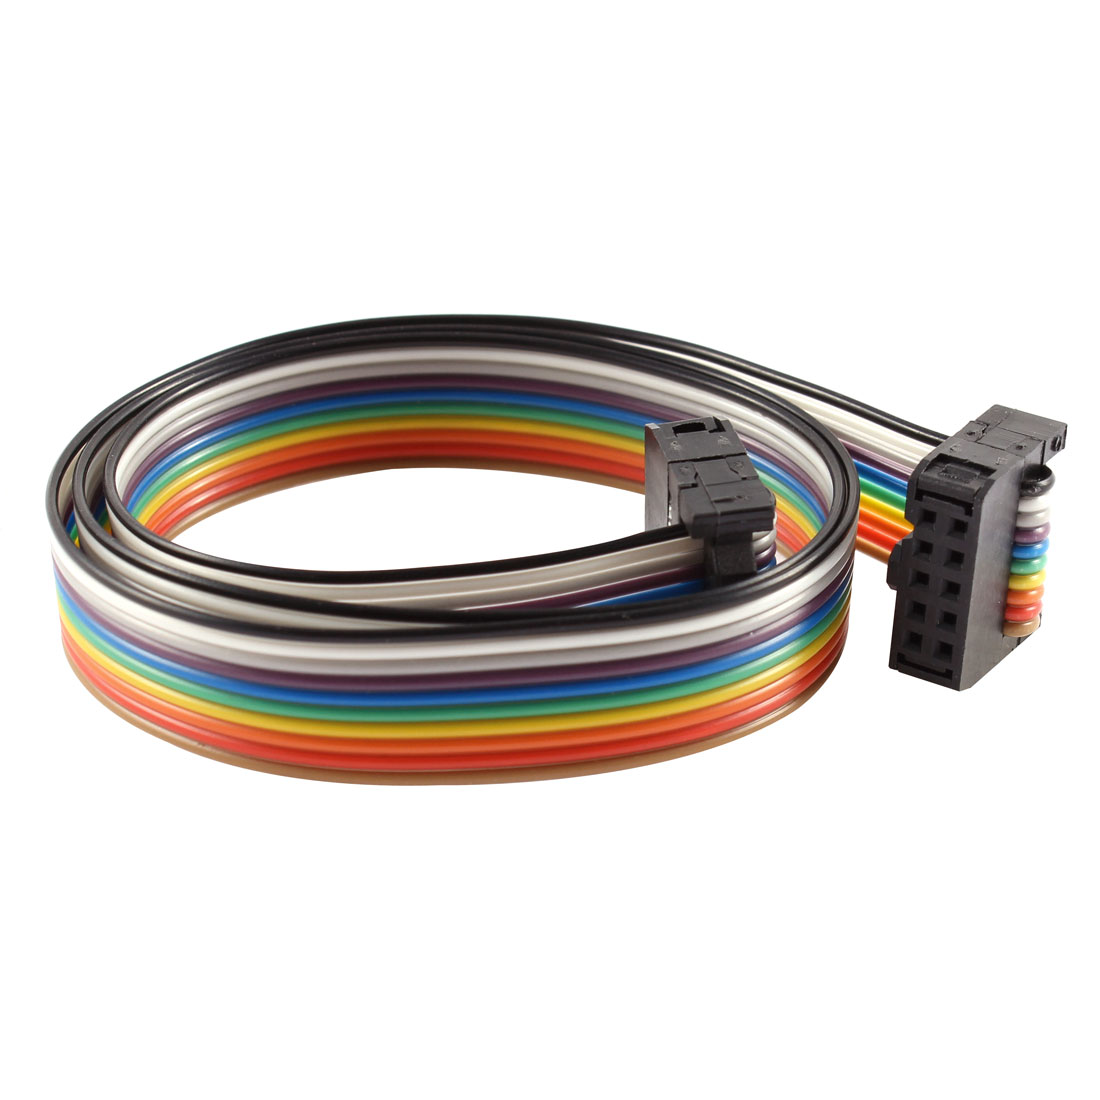 2.54mm Pitch 10 Pin 10 Way F/F Connector IDC Flat Rainbow Ribbon Cable 48cm